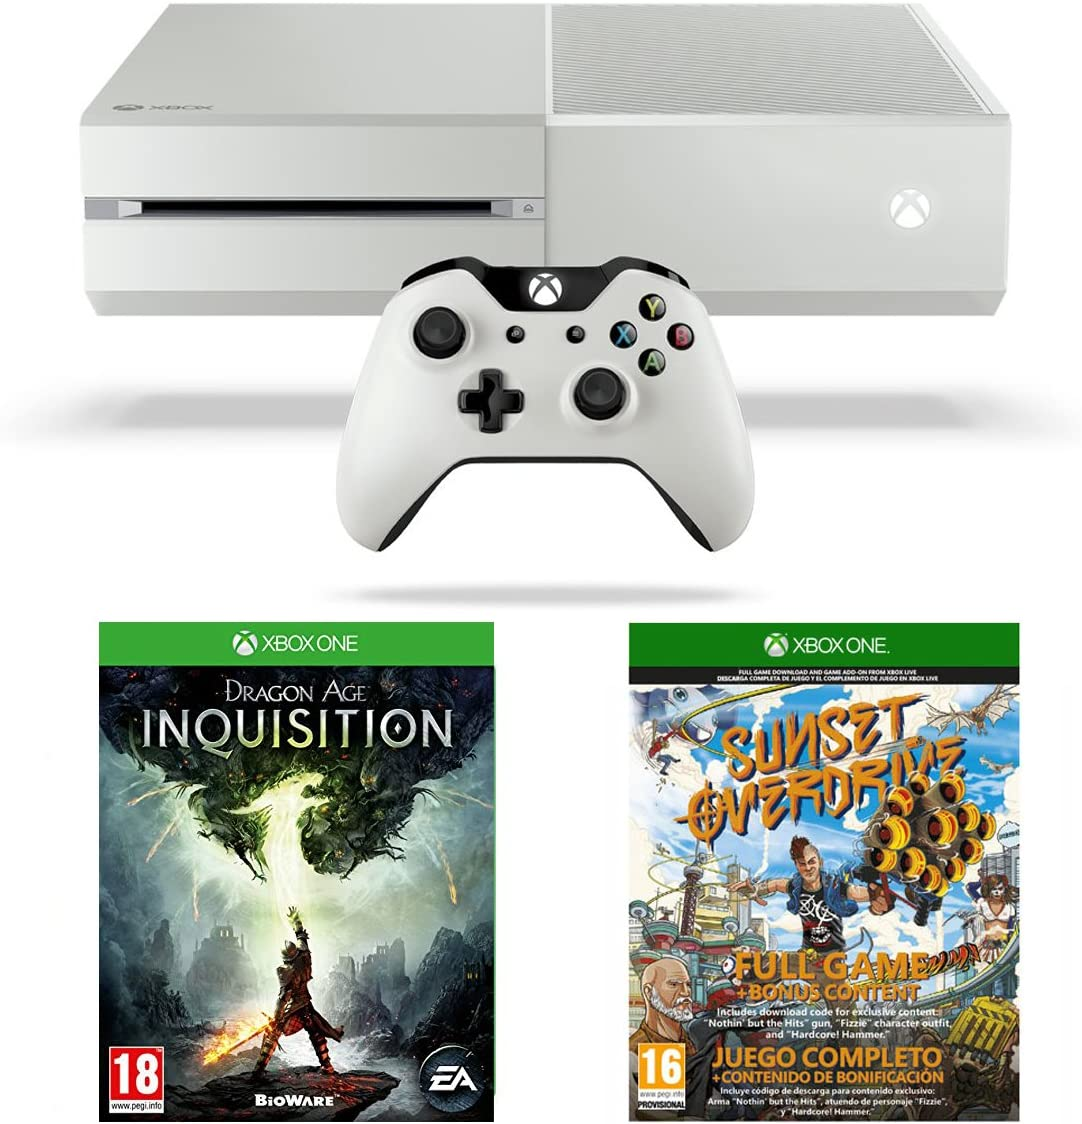 Xbox One White Console with Sunset Overdrive and Dragon Age Inquisition [Importación Inglesa]: Amazon.es: Videojuegos